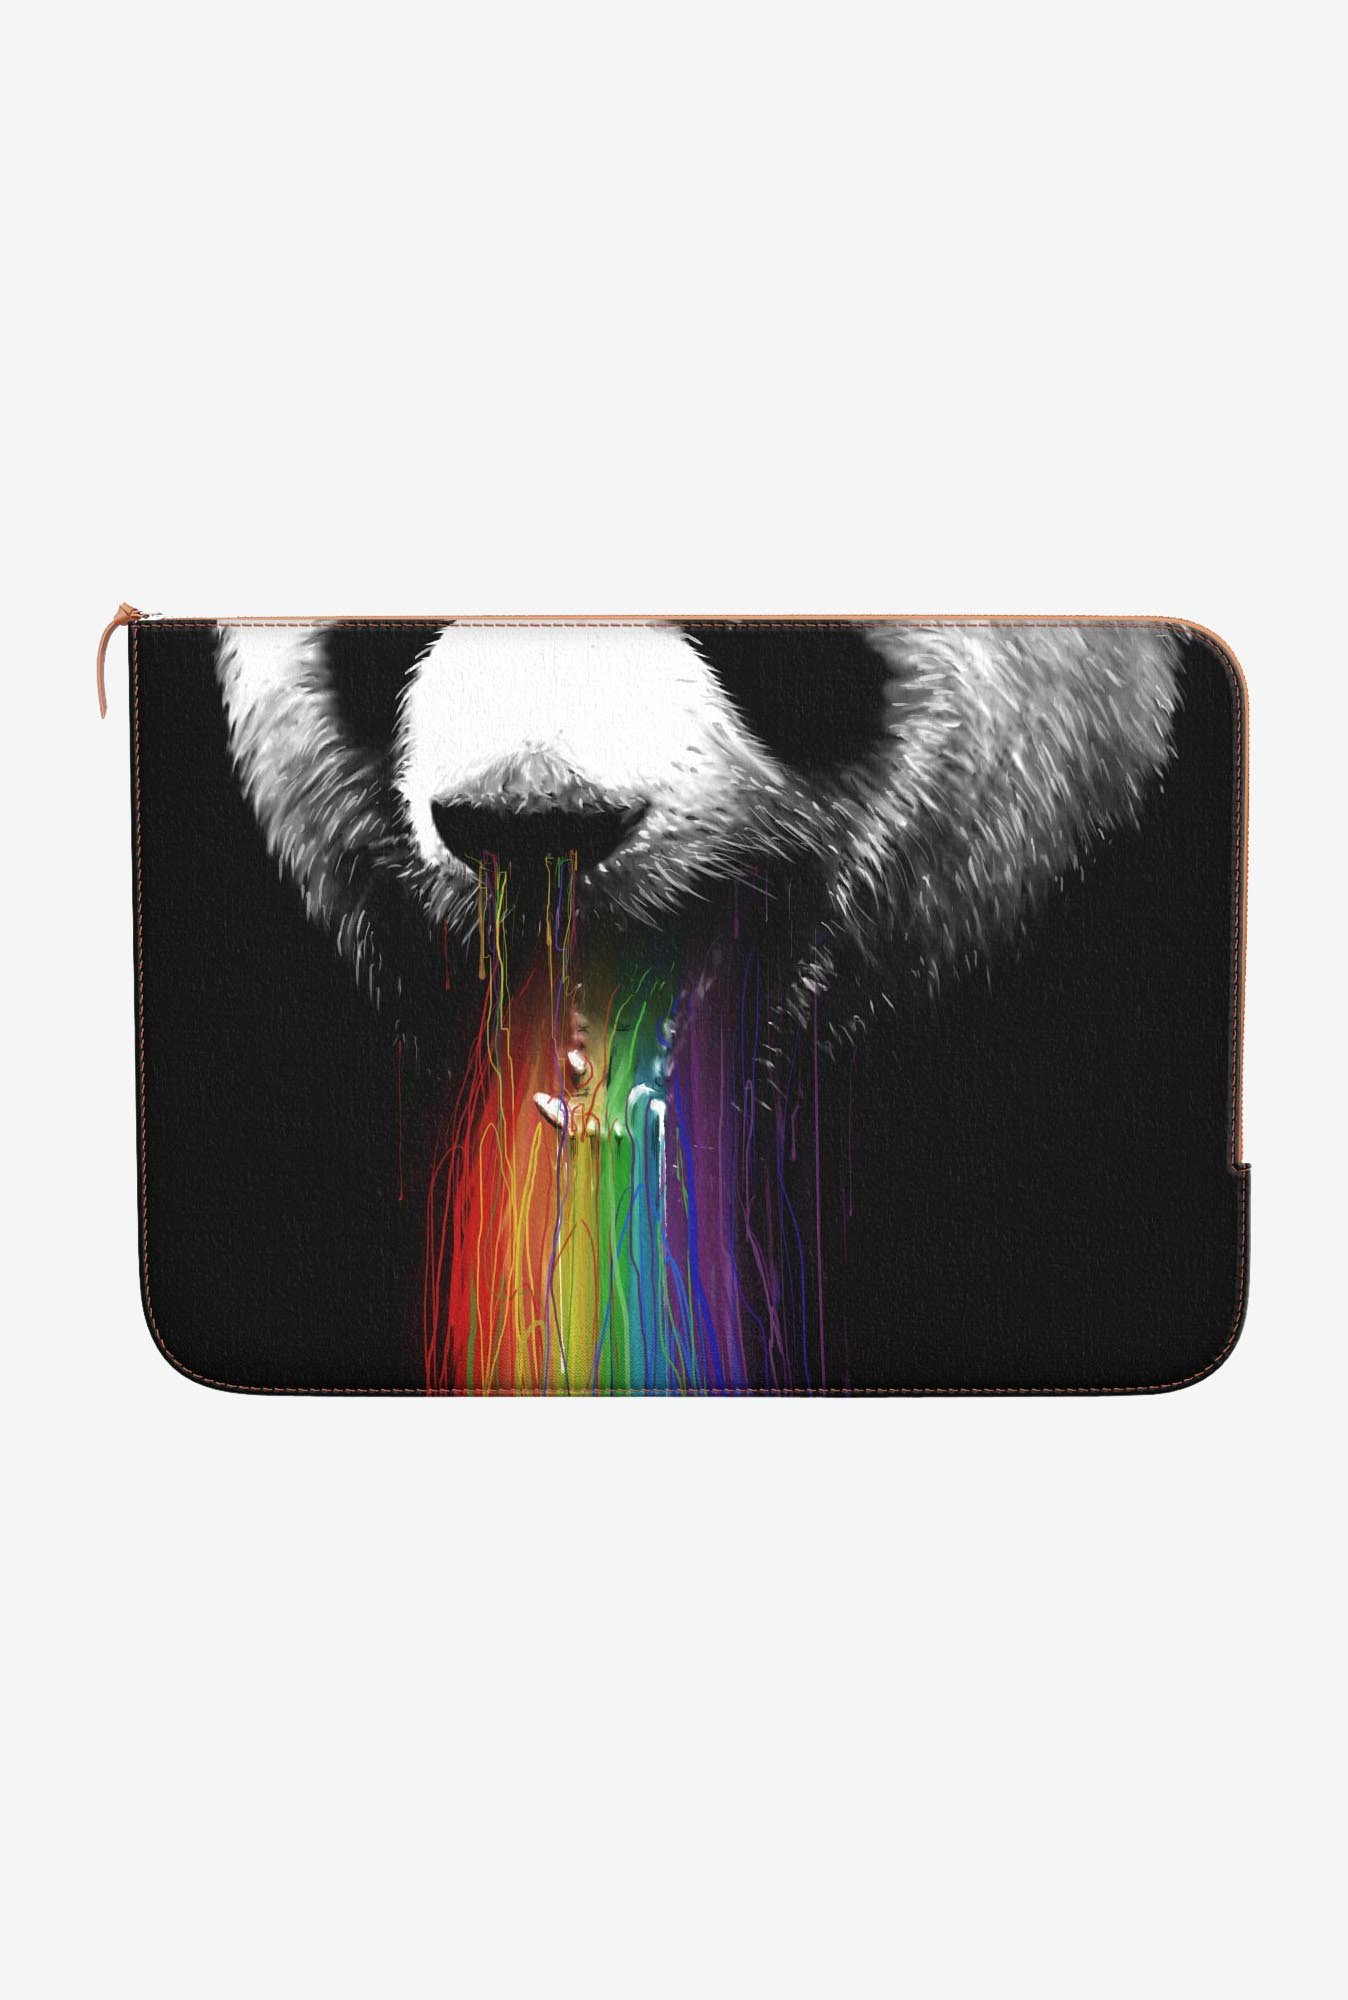 DailyObjects Pandalicious MacBook Air 11 Zippered Sleeve